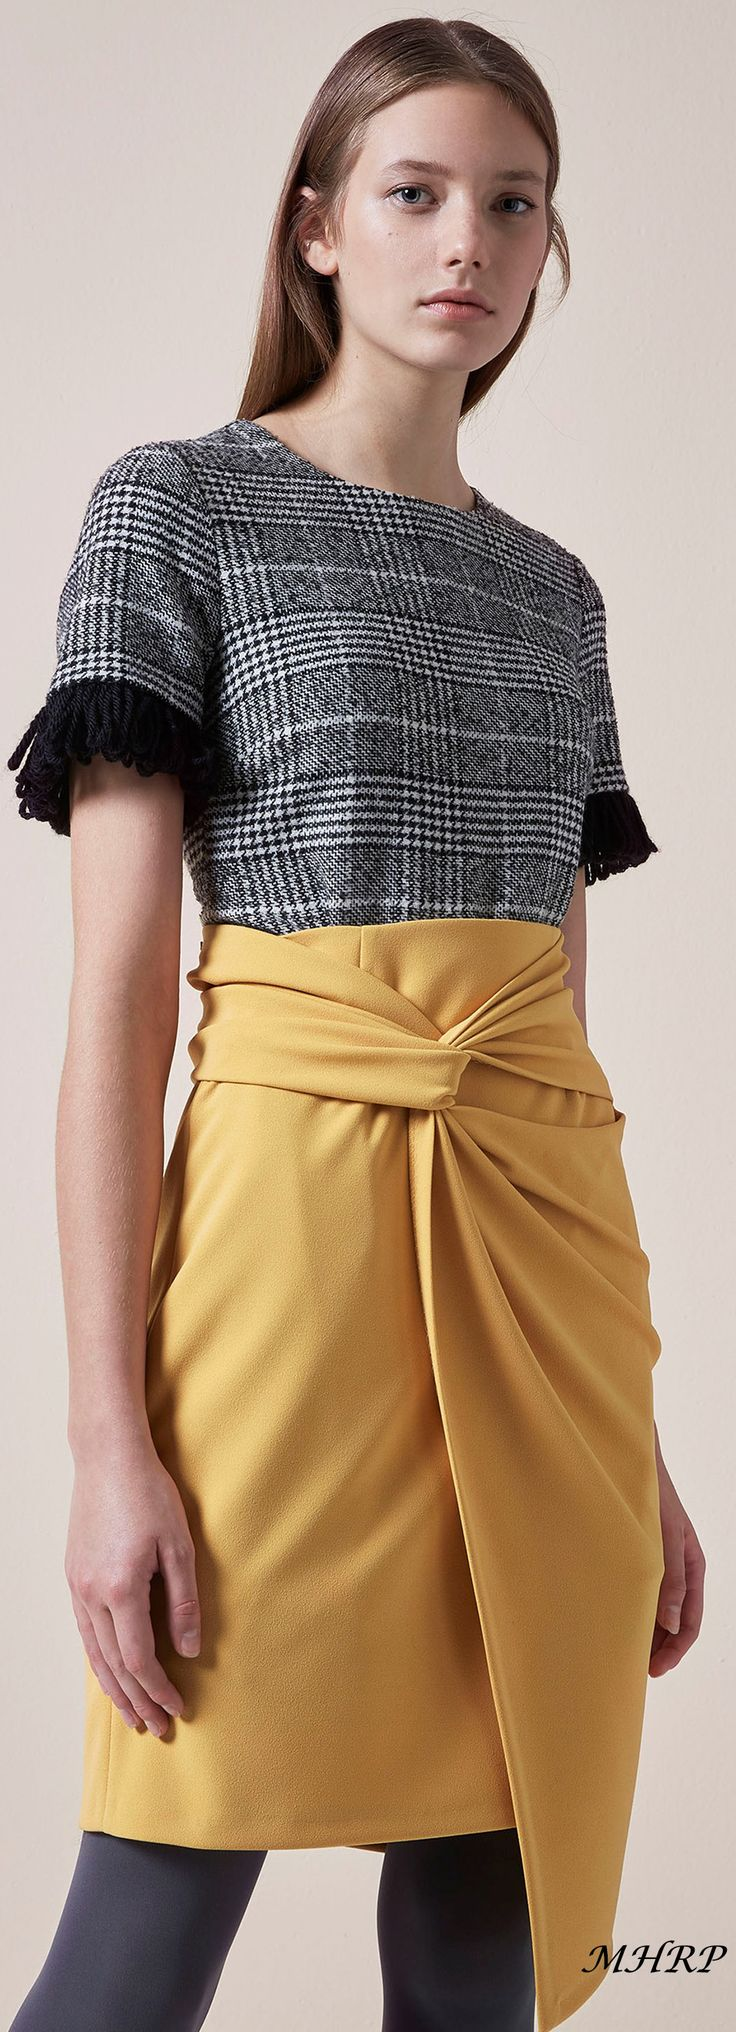 Blugirl Pre-Fall 2018_image from vogue.com - This Top  Vouge Fashion just sold on Wrhel.com Want to know what she paid for it? Check it out.